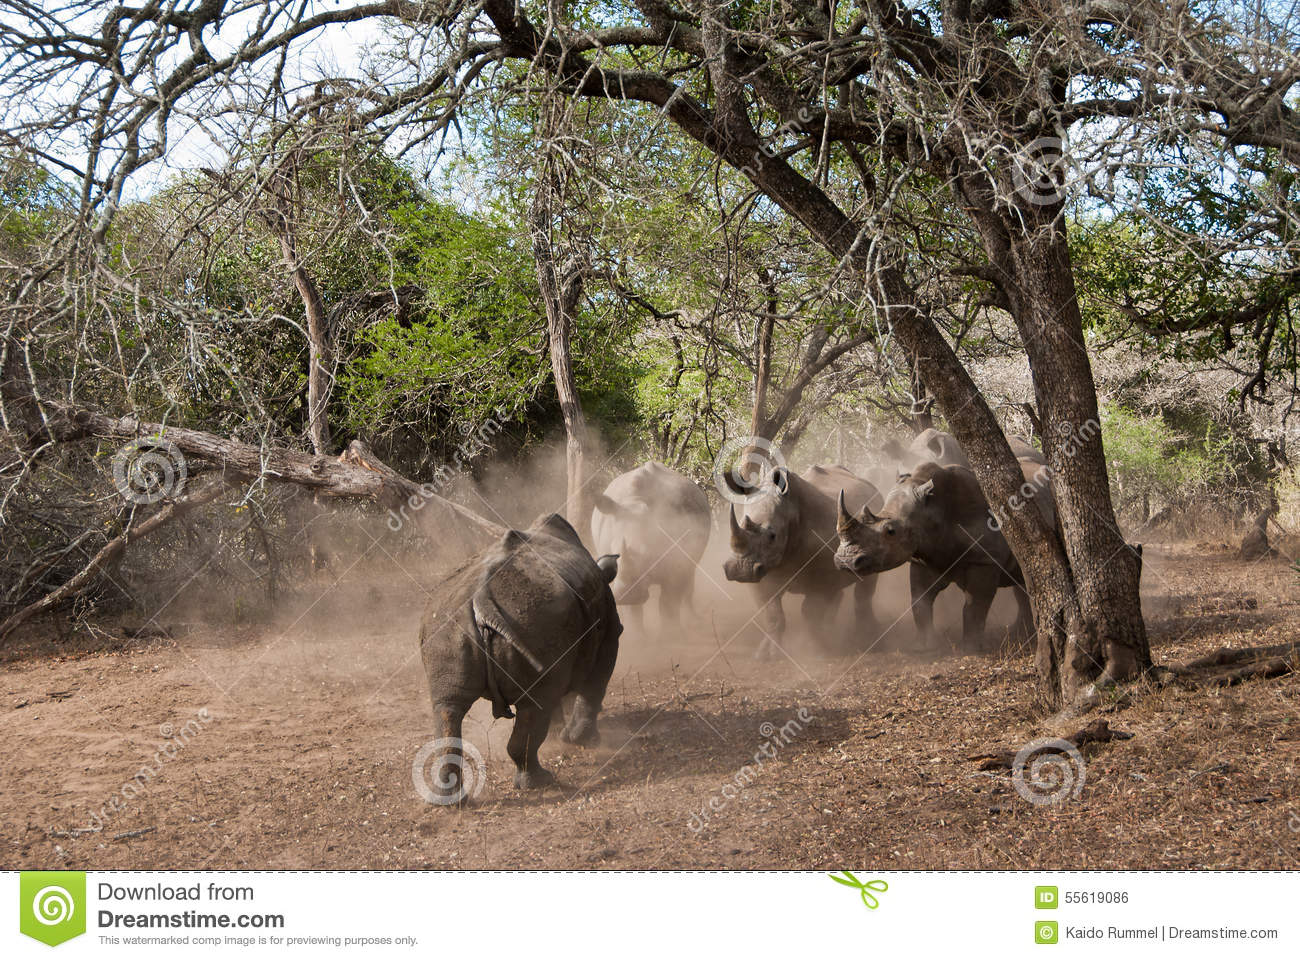 Rhino charge stock photo  Image of environment, endangered